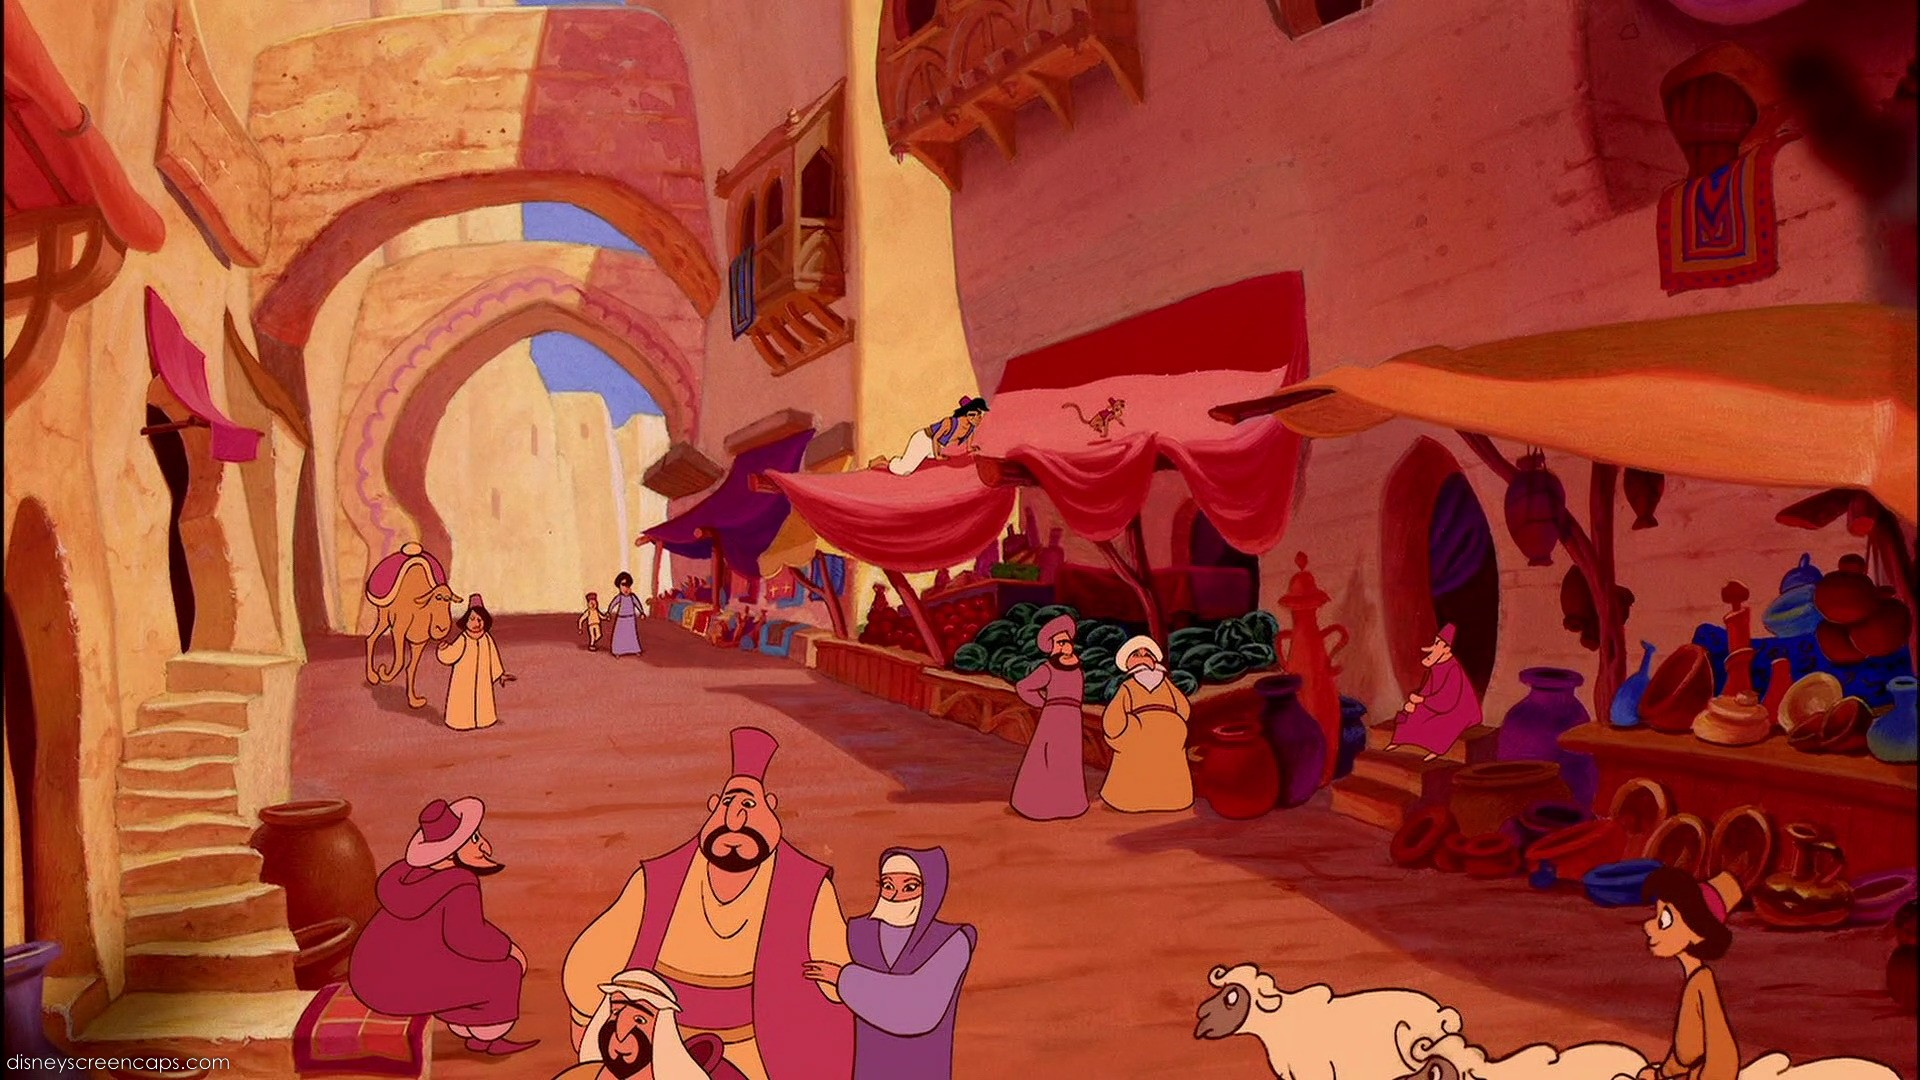 Disney Crossover Images Empty Backdrop From Aladdin HD Wallpaper And Background Photos